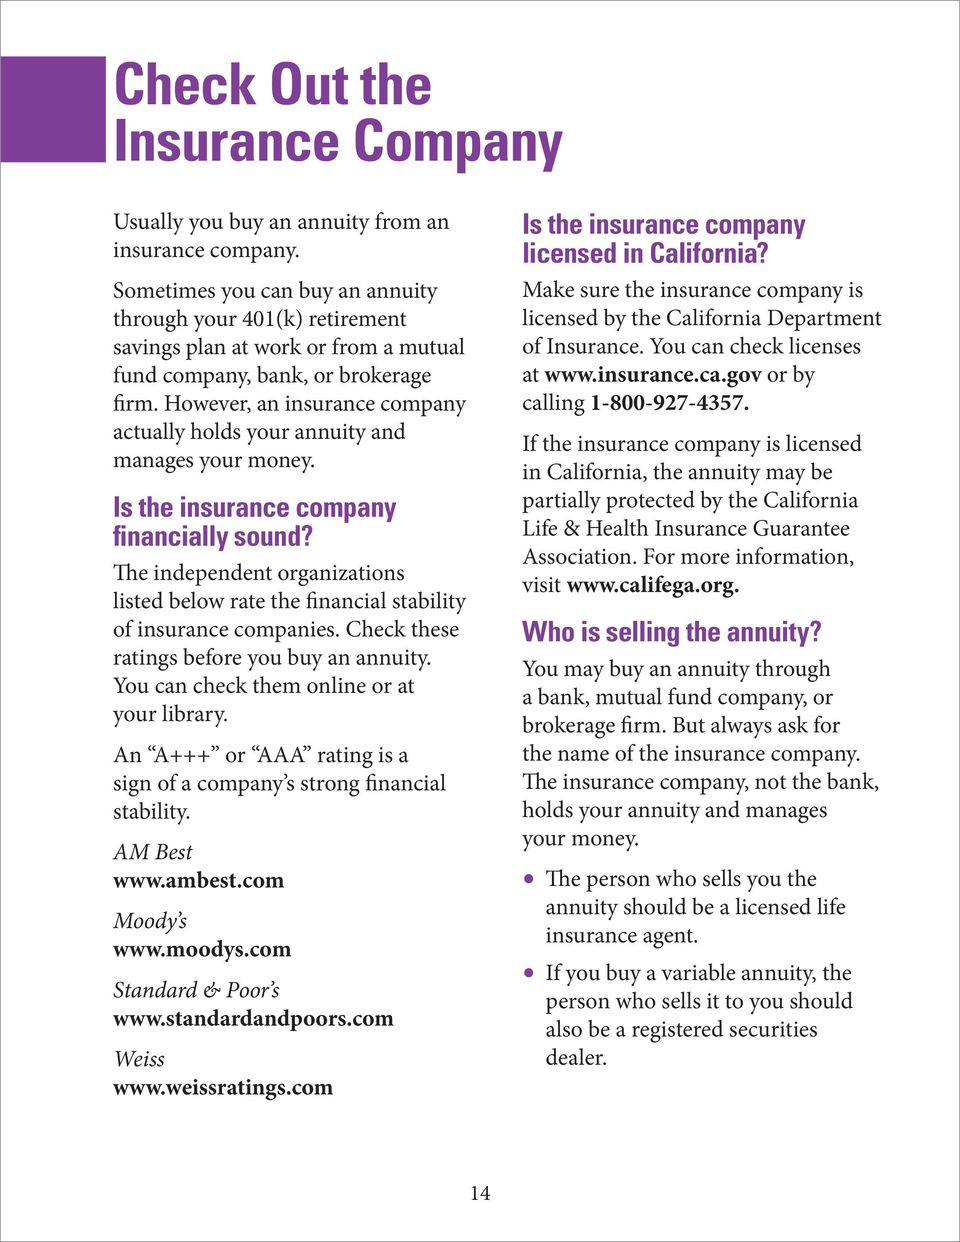 However, an insurance company actually holds your annuity and manages your money. Is the insurance company financially sound?